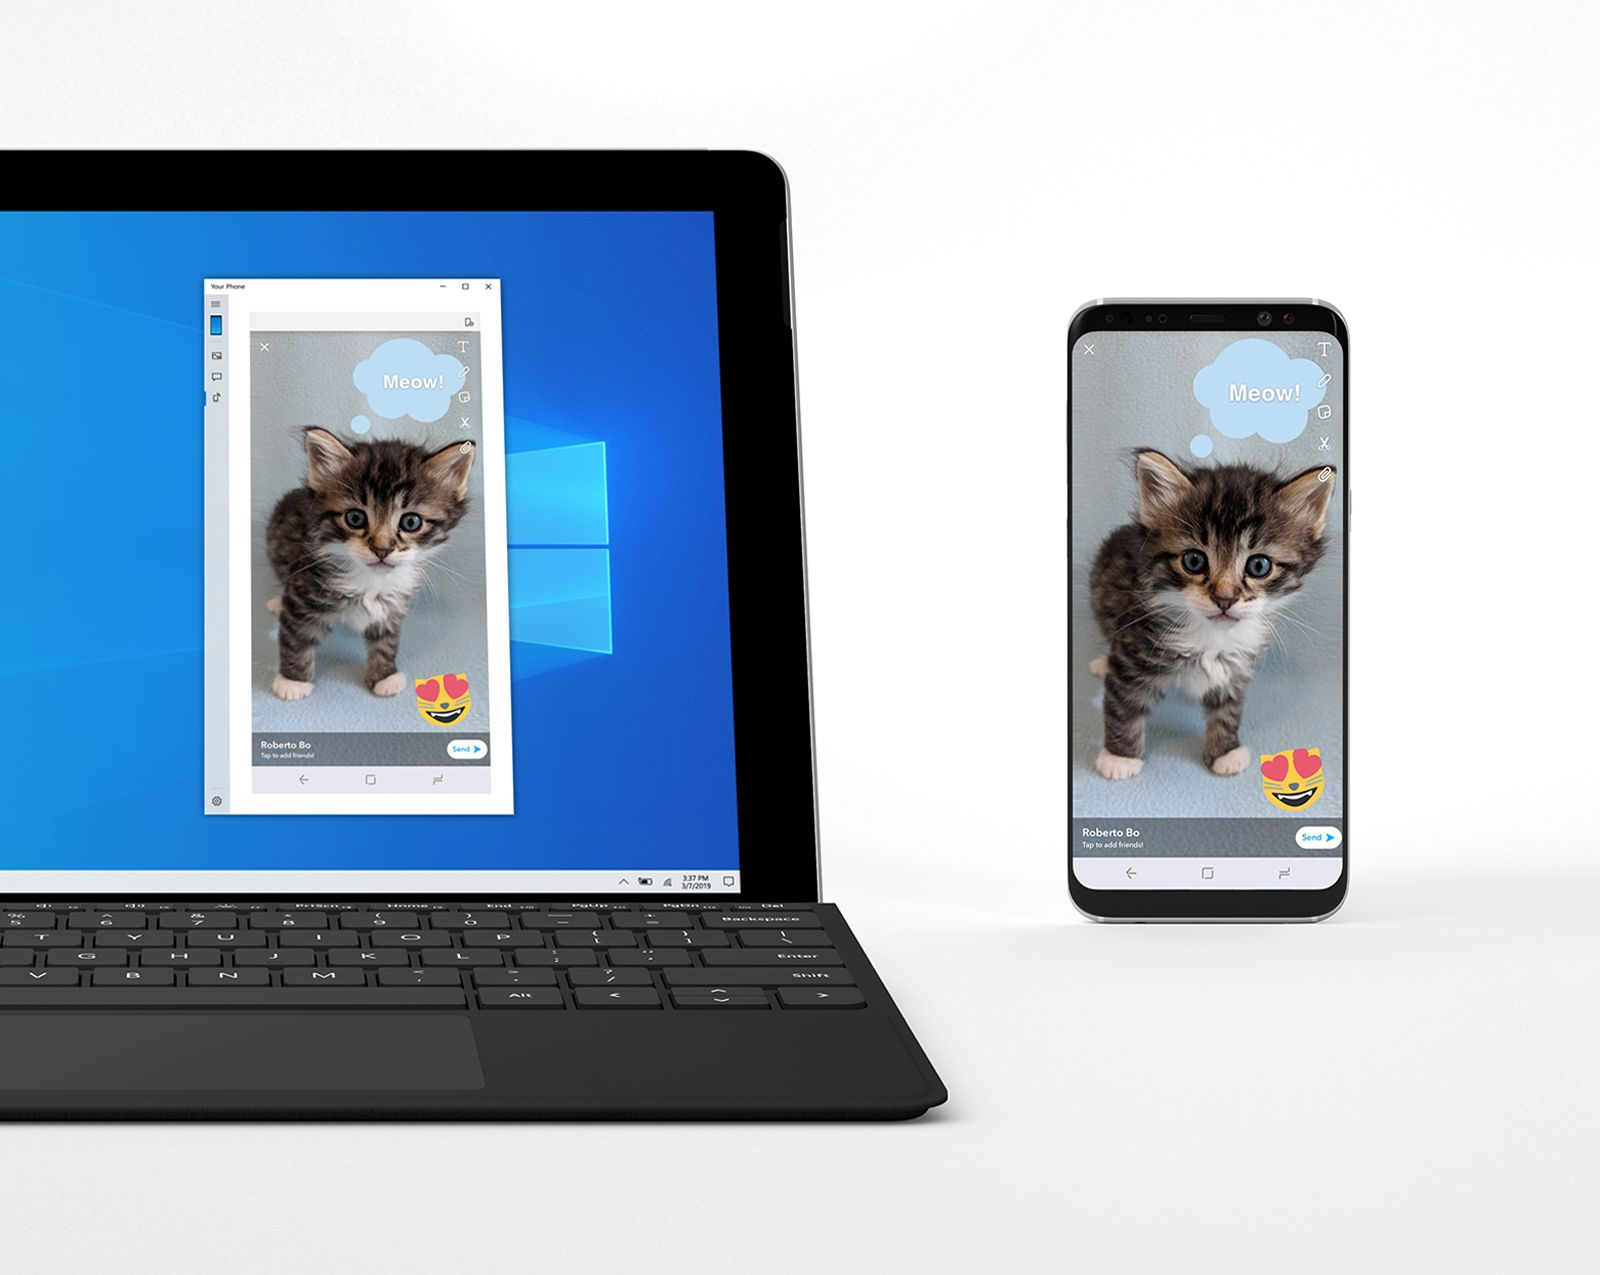 How To Mirror Display In Windows 10 How to Mirror Your